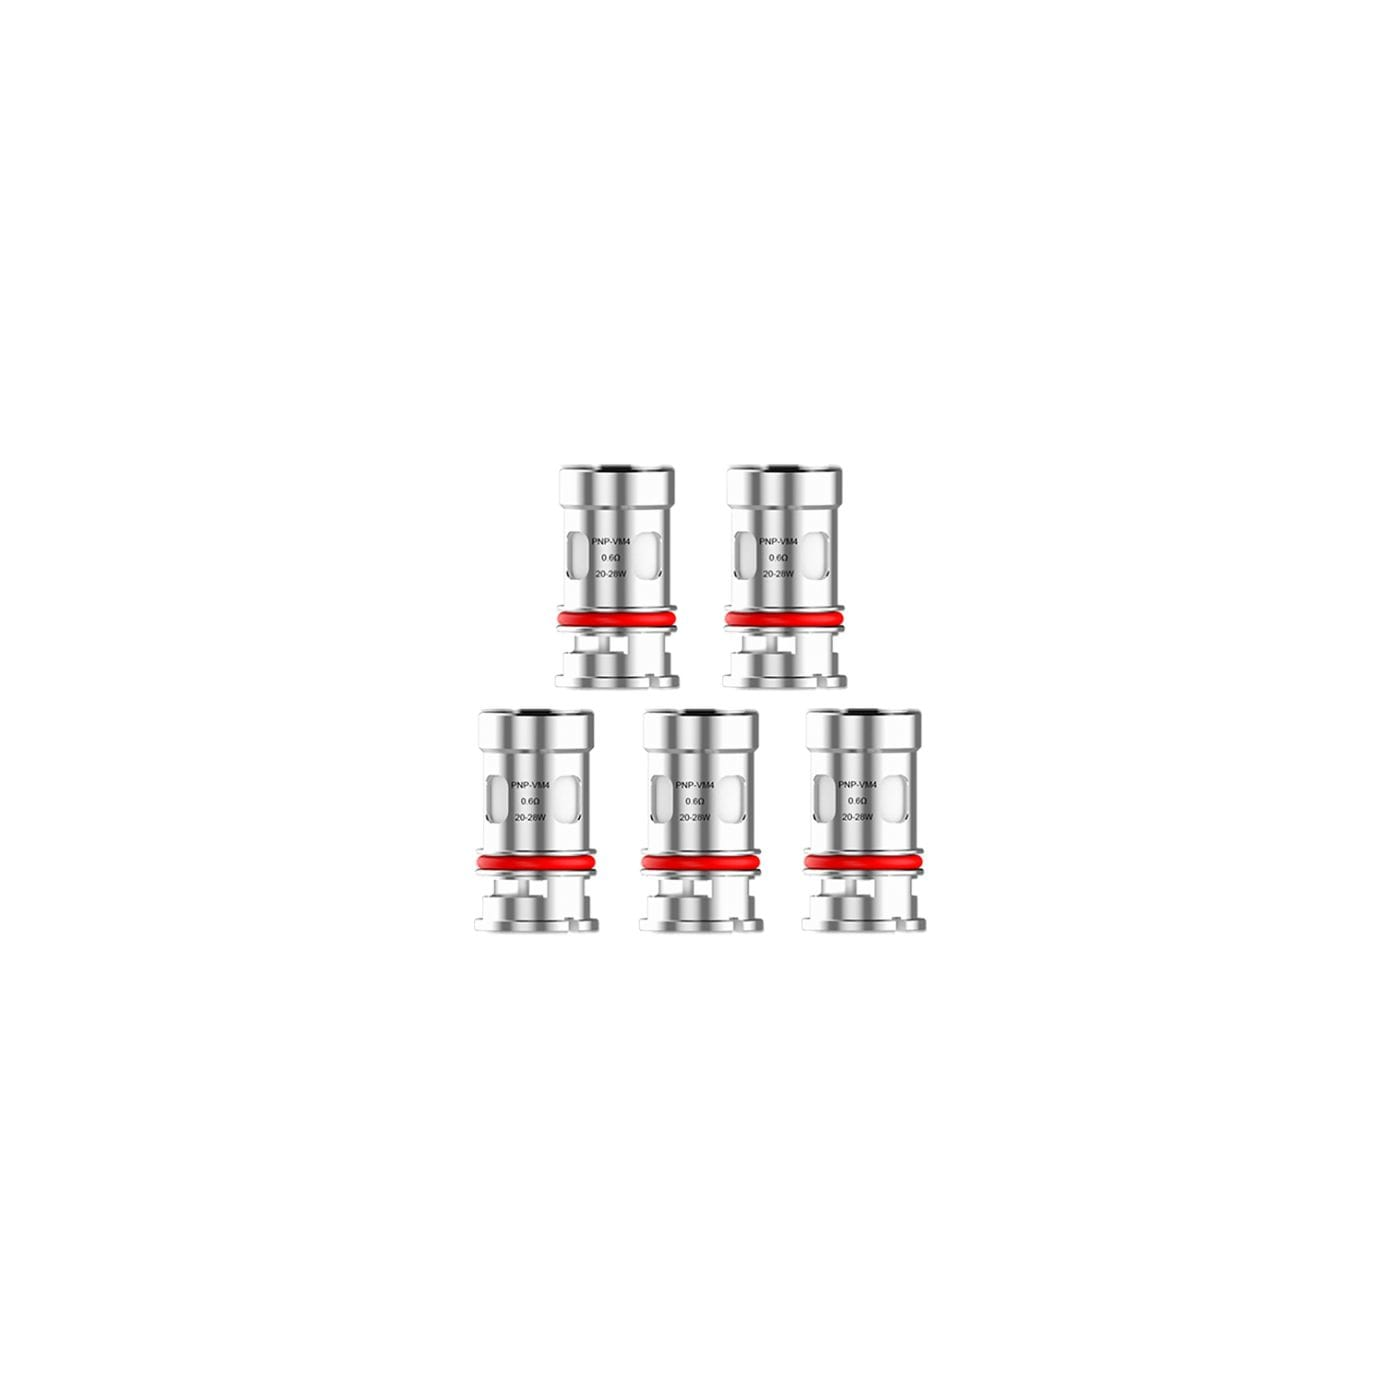 VooPoo PnP-VM4 Replacement Coil - 5 Pack